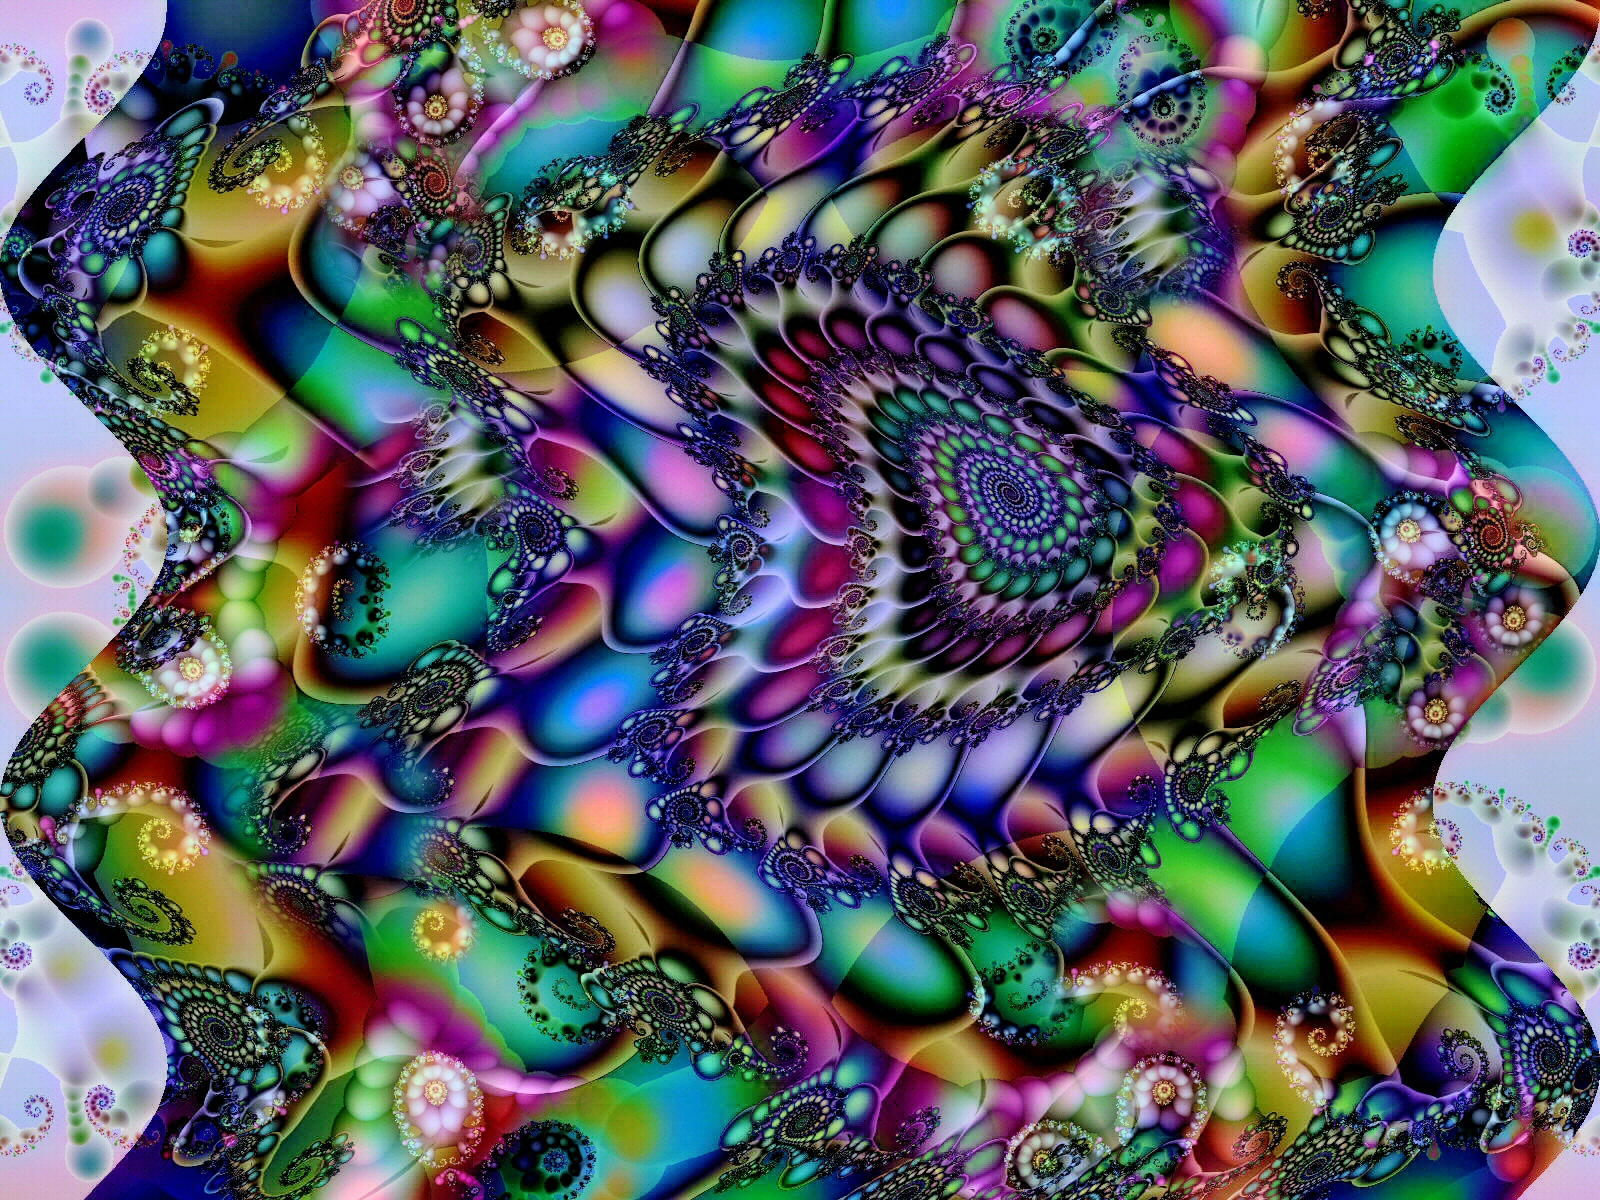 Artistic Psychedelic Trippy Mind Teaser Mindteaser Abstract Wallpaper 1600x1200